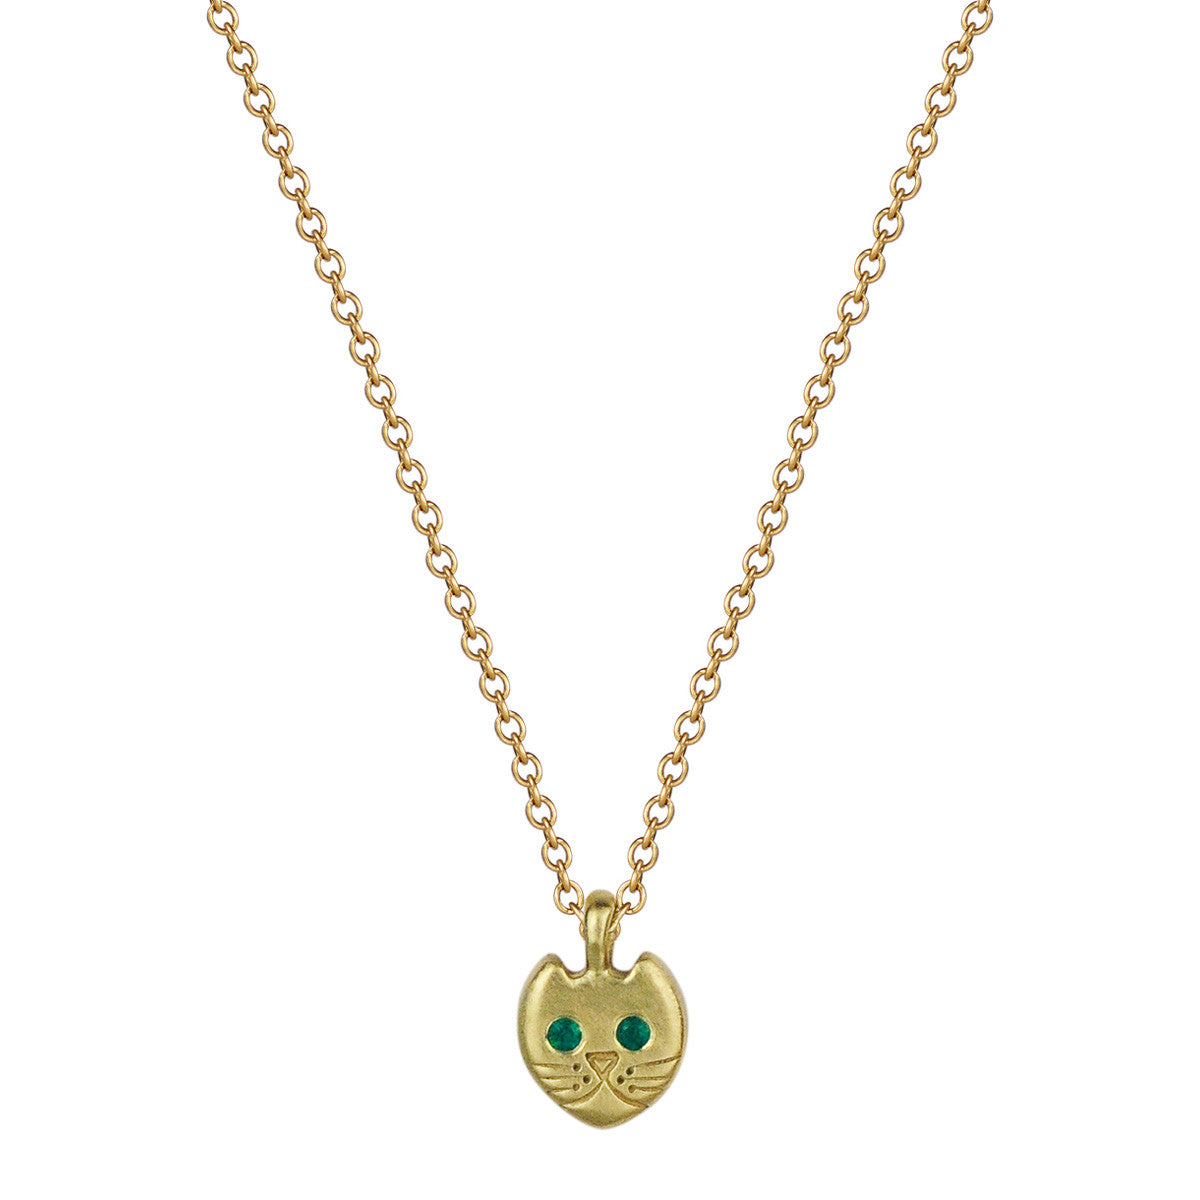 18K Gold Tiny Kitten Pendant with Emerald Eyes